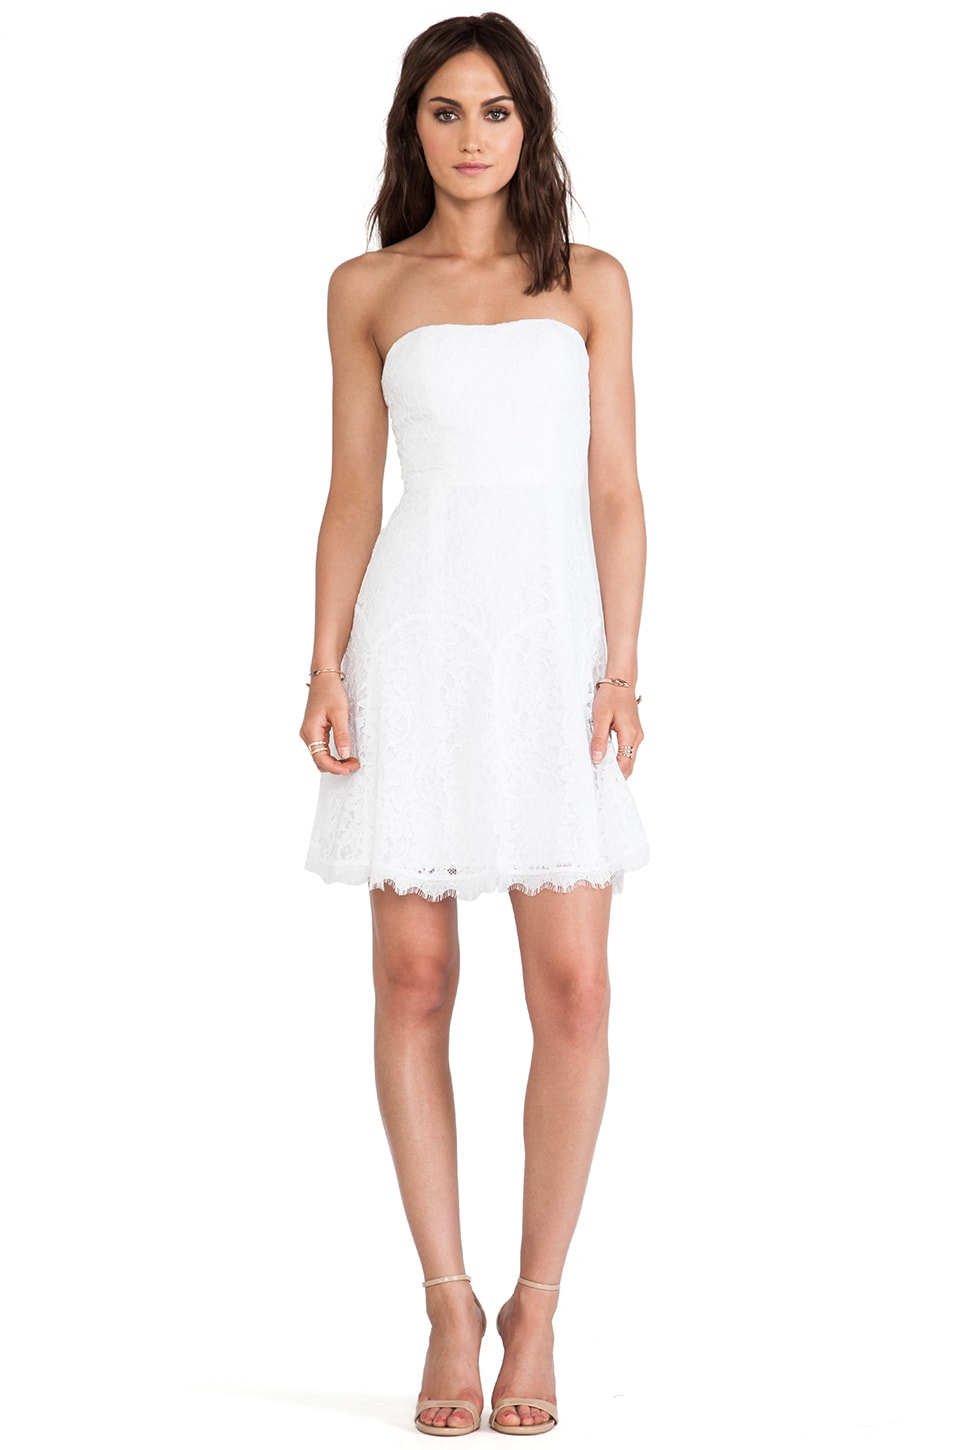 Diane von Furstenberg Amira Lace Dress in White